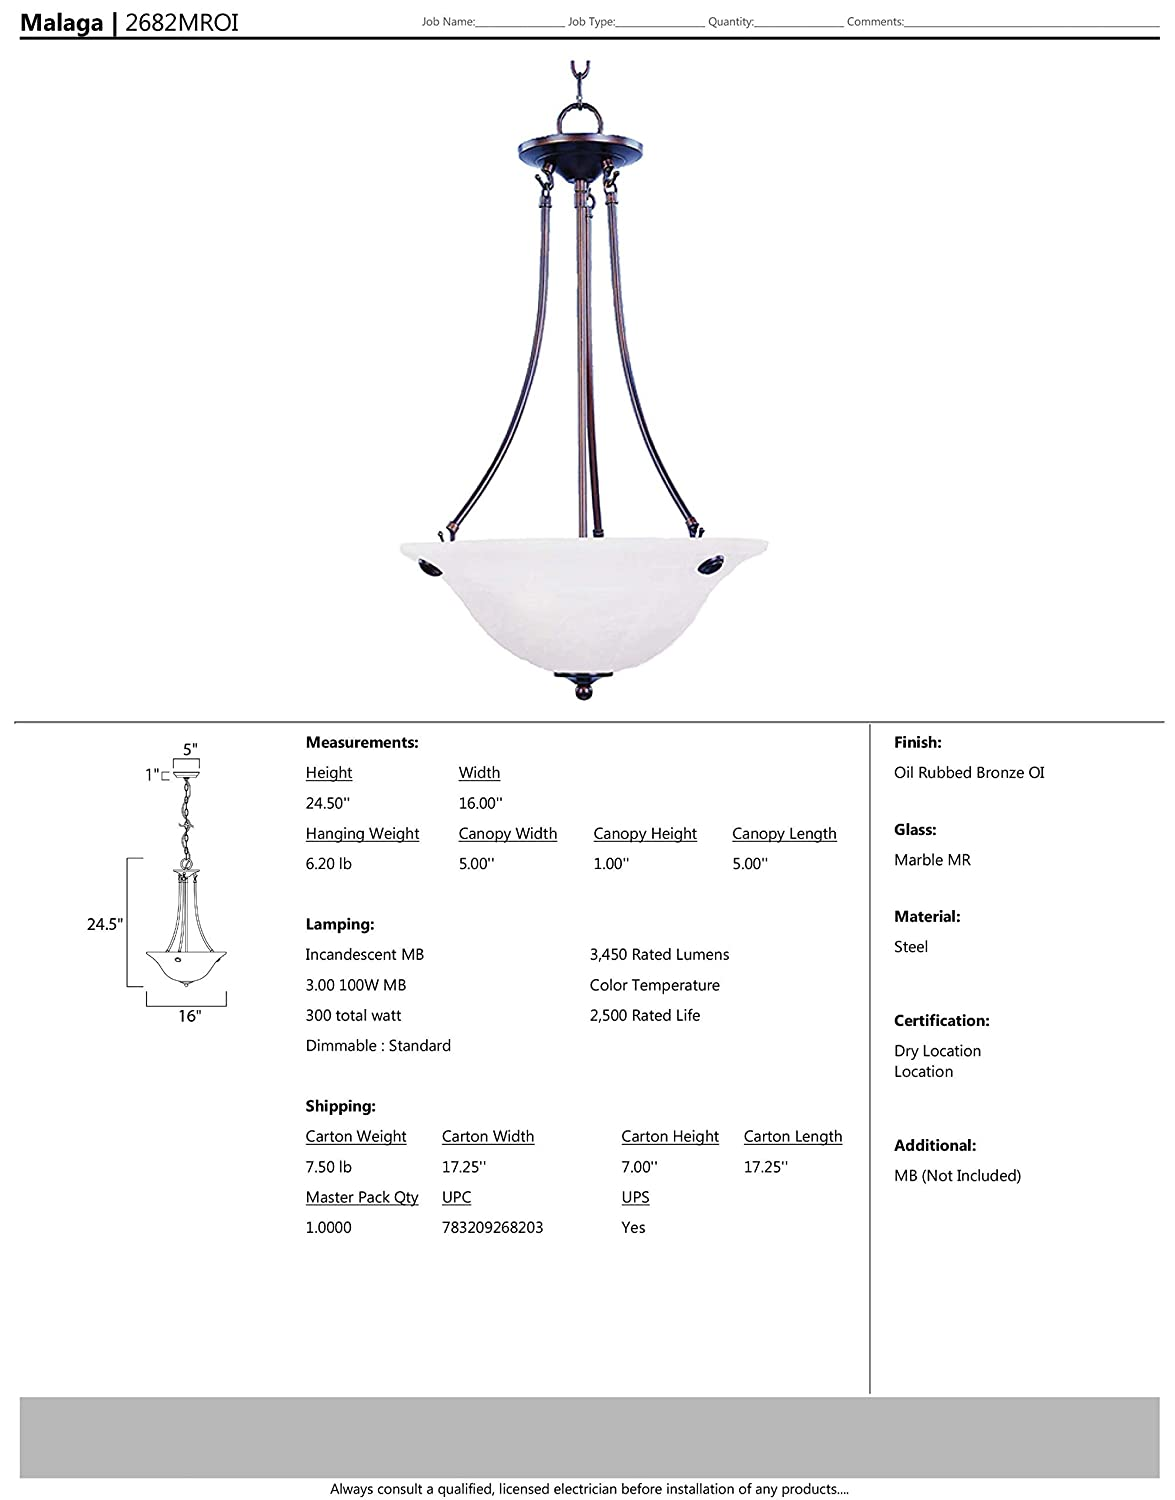 Marble Glass Satin Nickel Finish 1150 Rated Lumens Maxim Lighting MB Incandescent Incandescent Bulb Onyx Shade Material Damp Safety Rating 100W Max. Standard Dimmable Maxim 2682MRSN Malaga 3-Light Invert Bowl Pendant